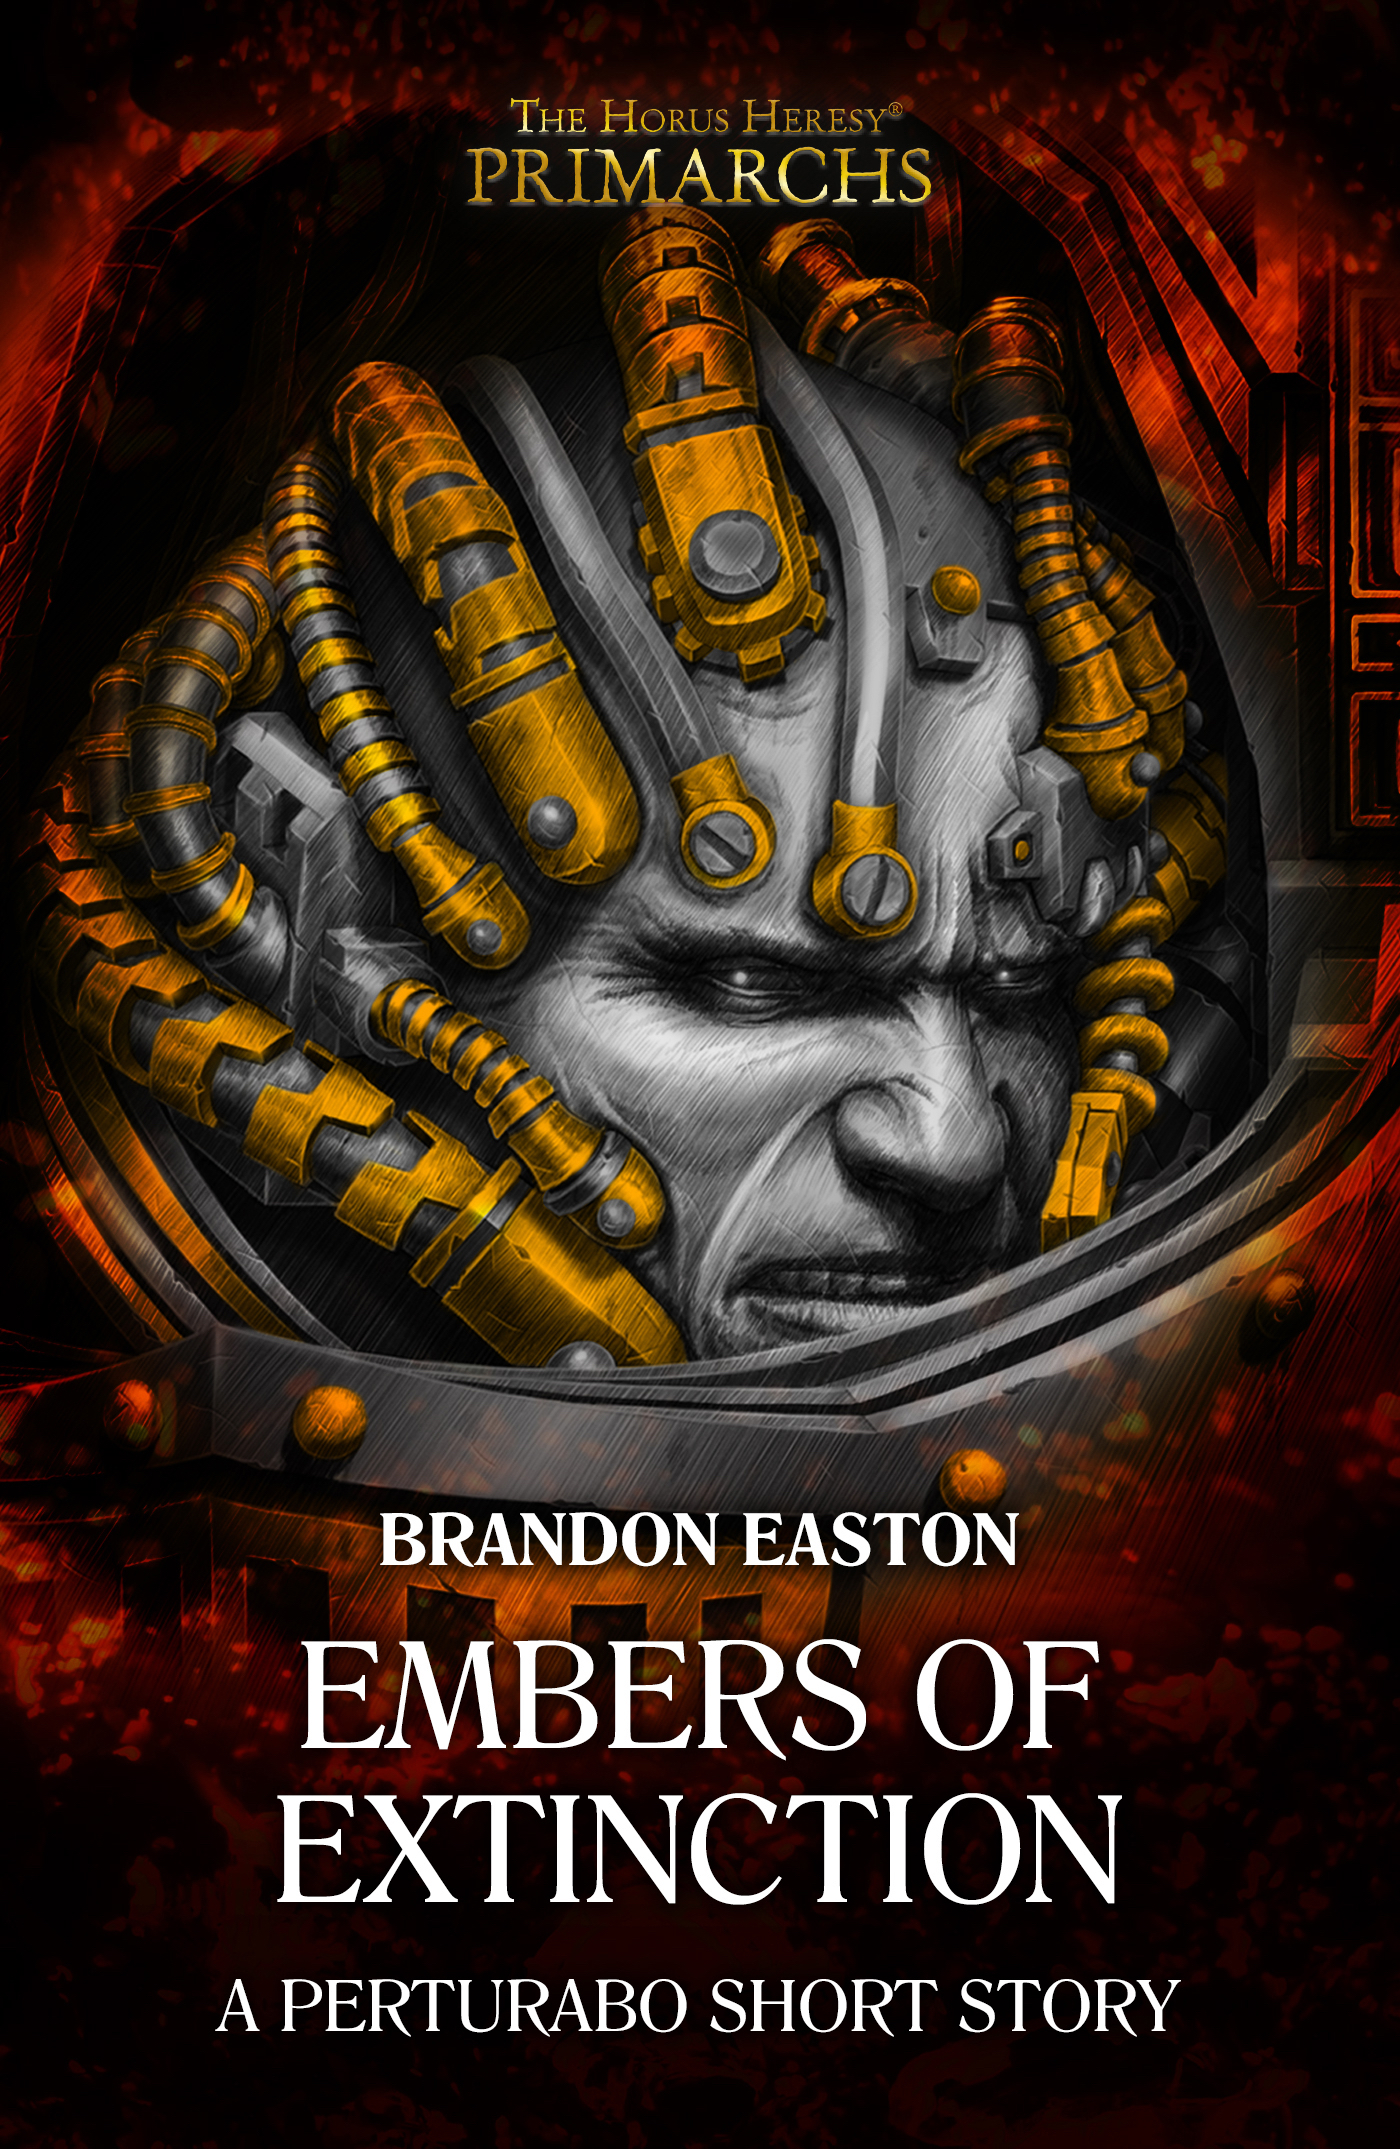 Embers of Extinction by Brandon Easton